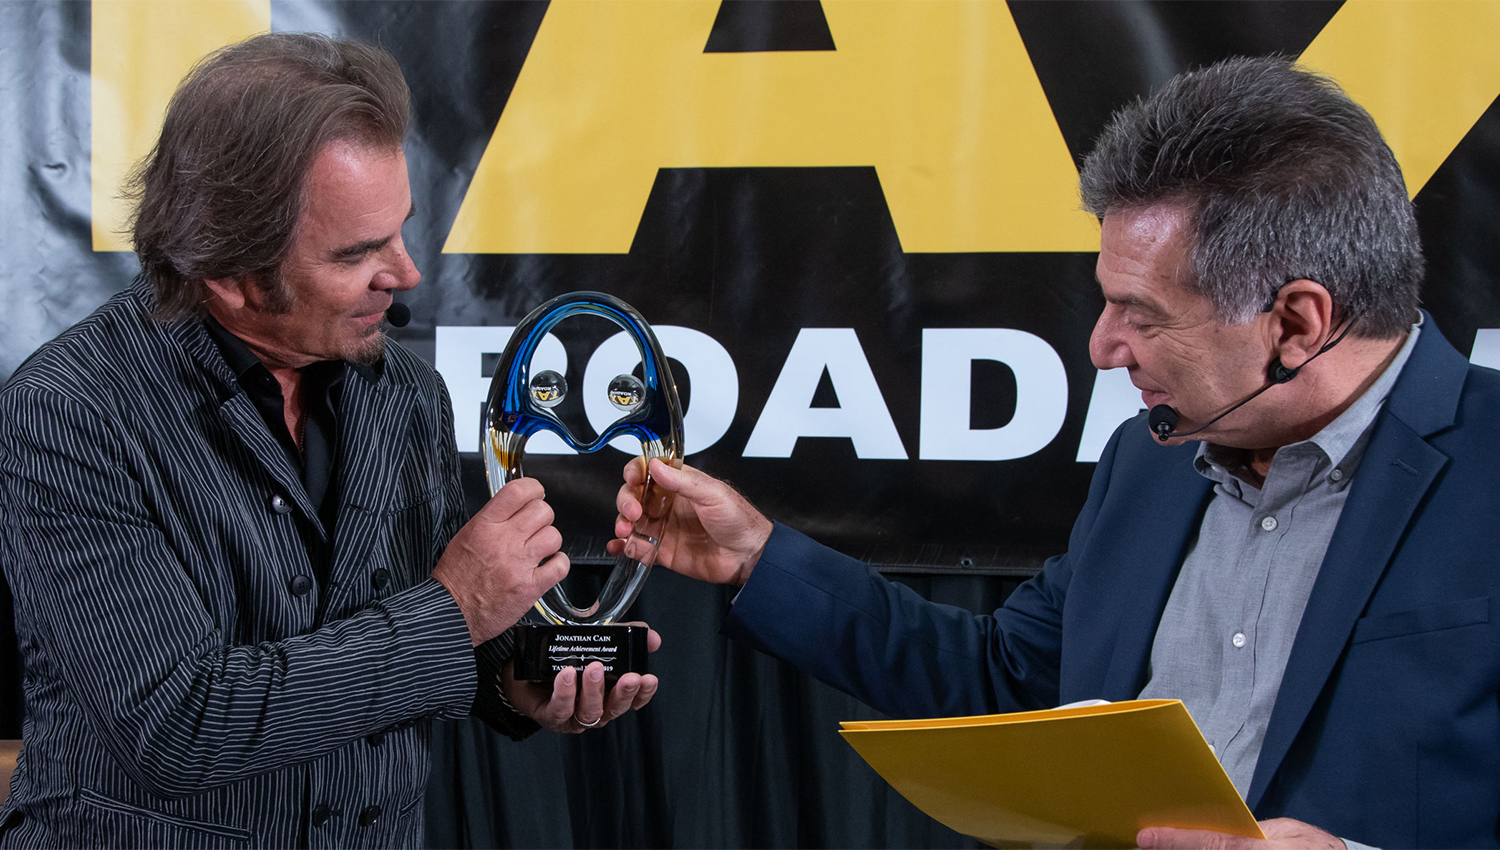 Jonathan Cain and TAXI's Michael Laskow admire the Lifetime Achievement Award Cain received.